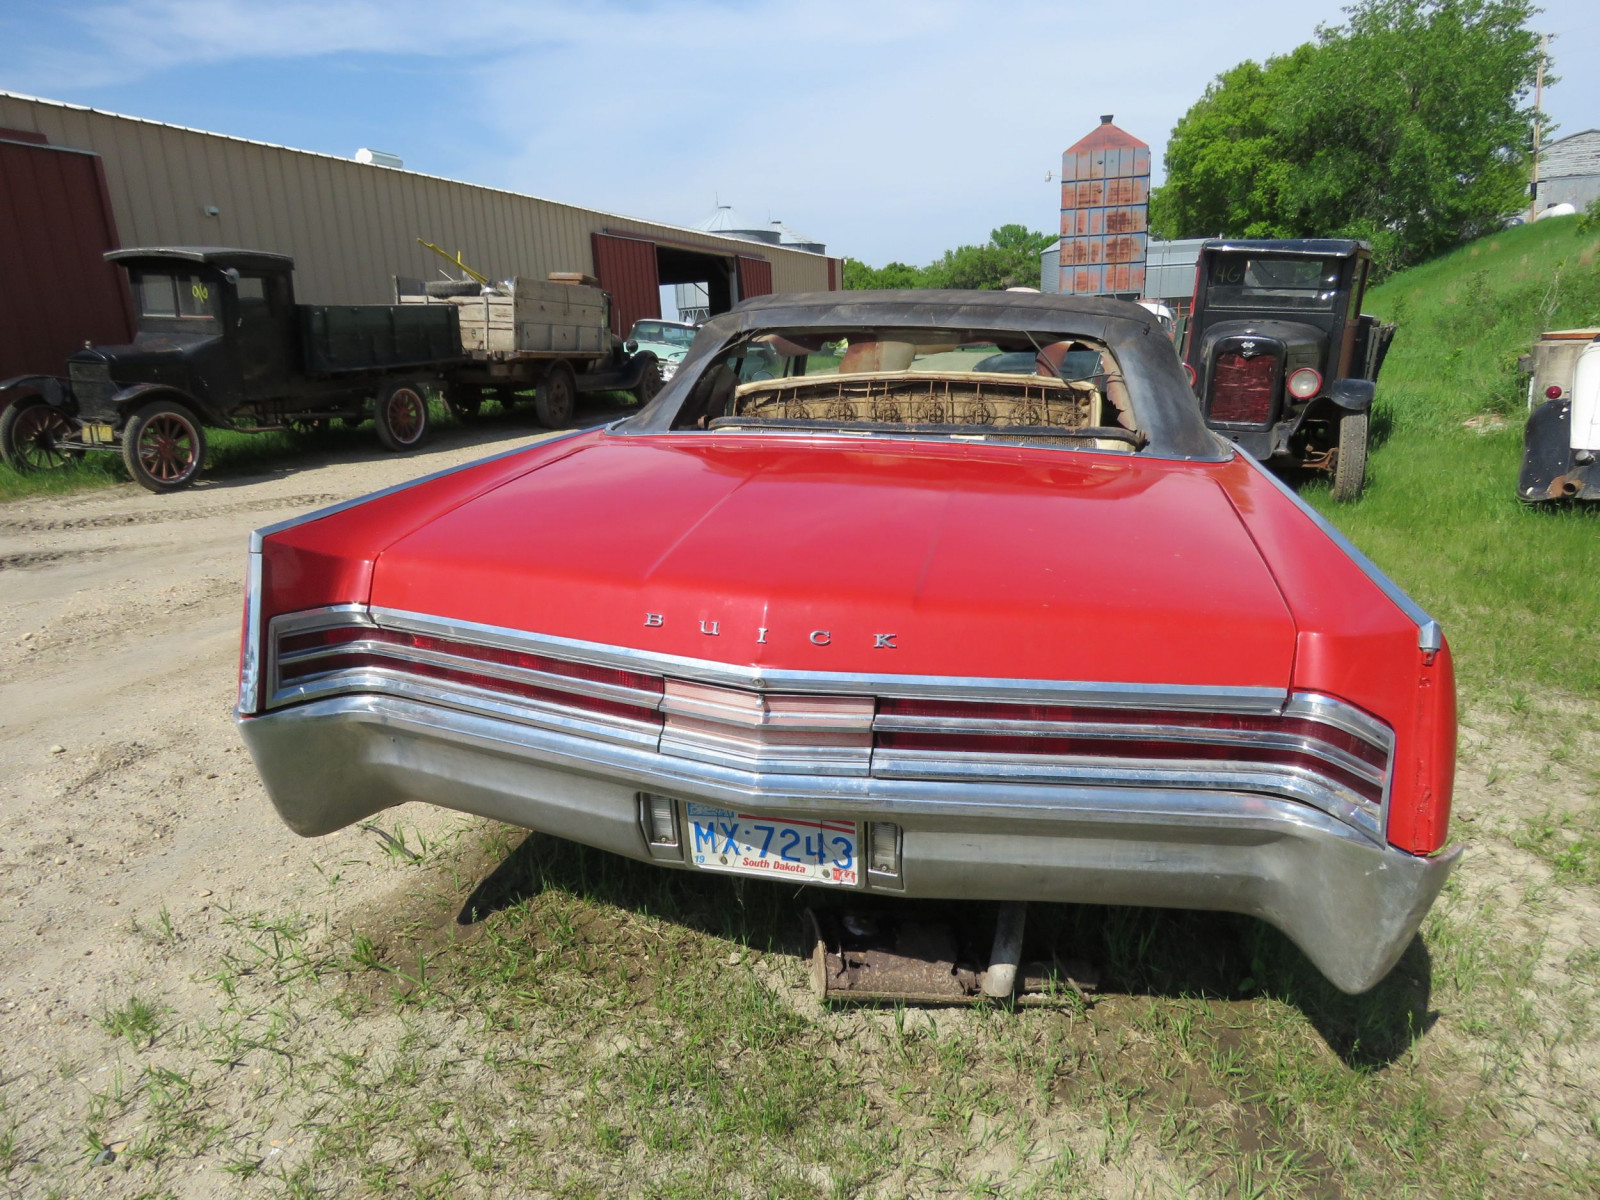 1965 Buick Electra 225 Convertible 484675H286474 - Image 6